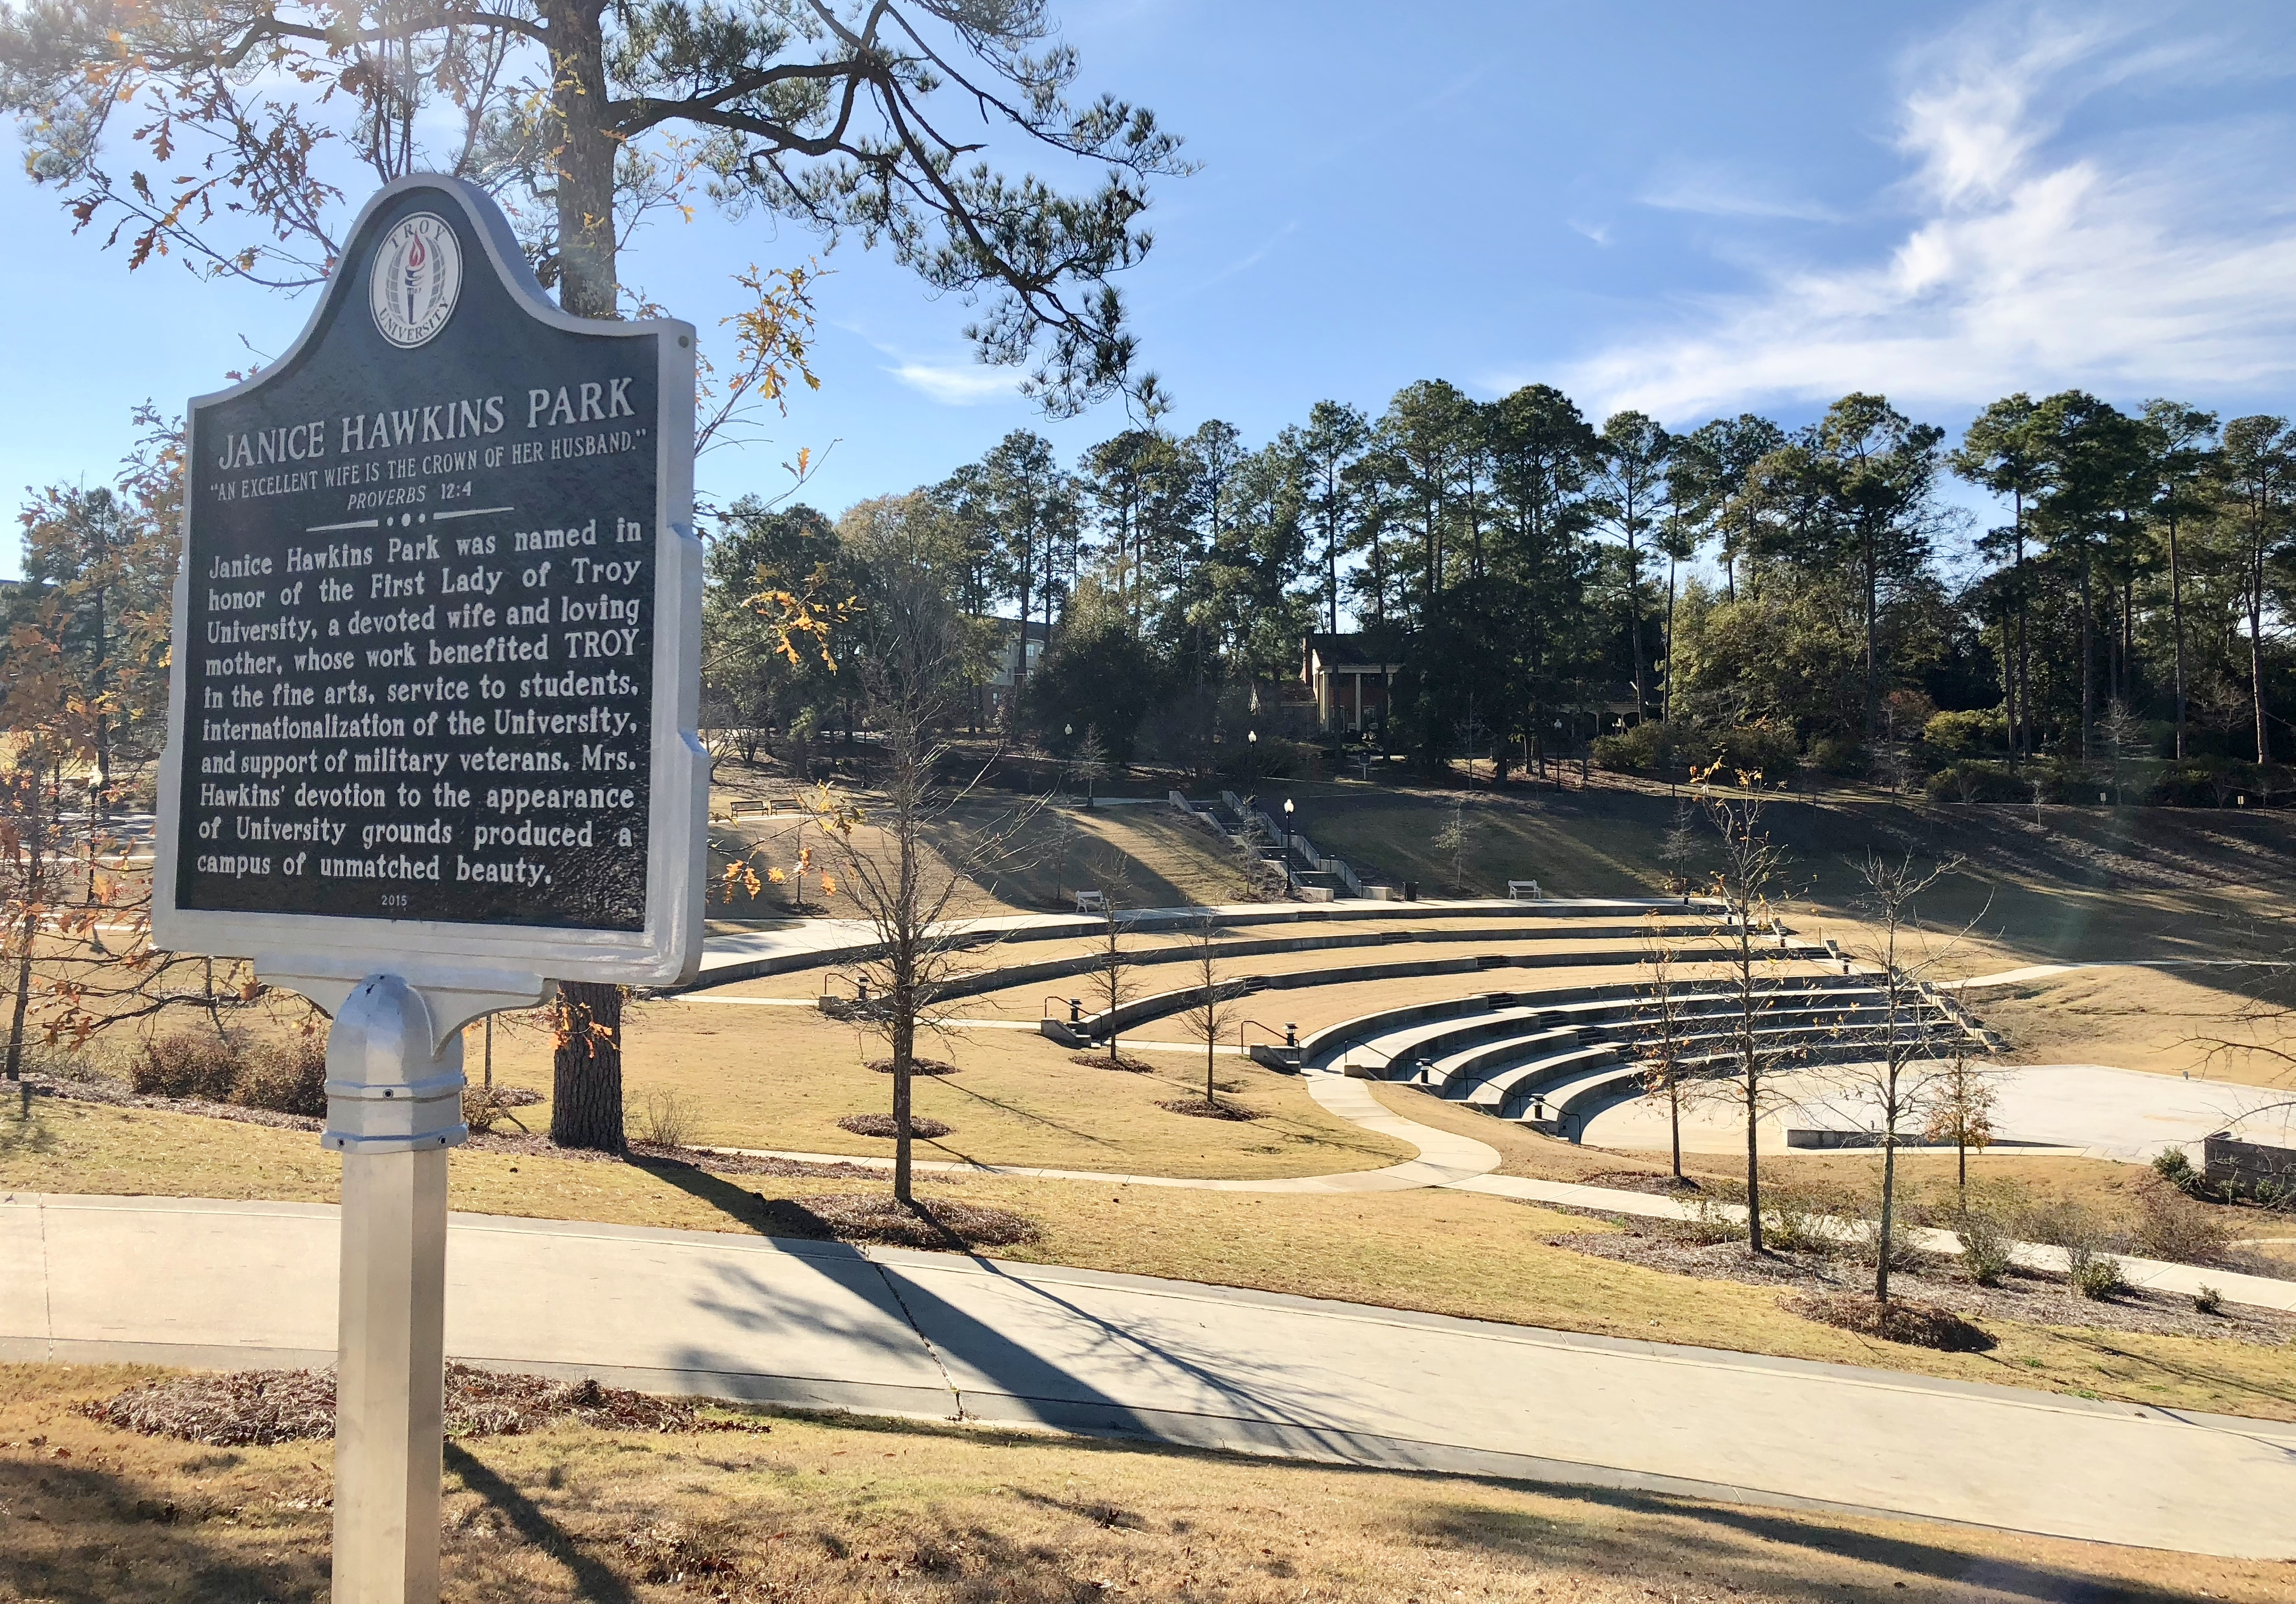 View of amphitheater at the Janice Hawkins Park.